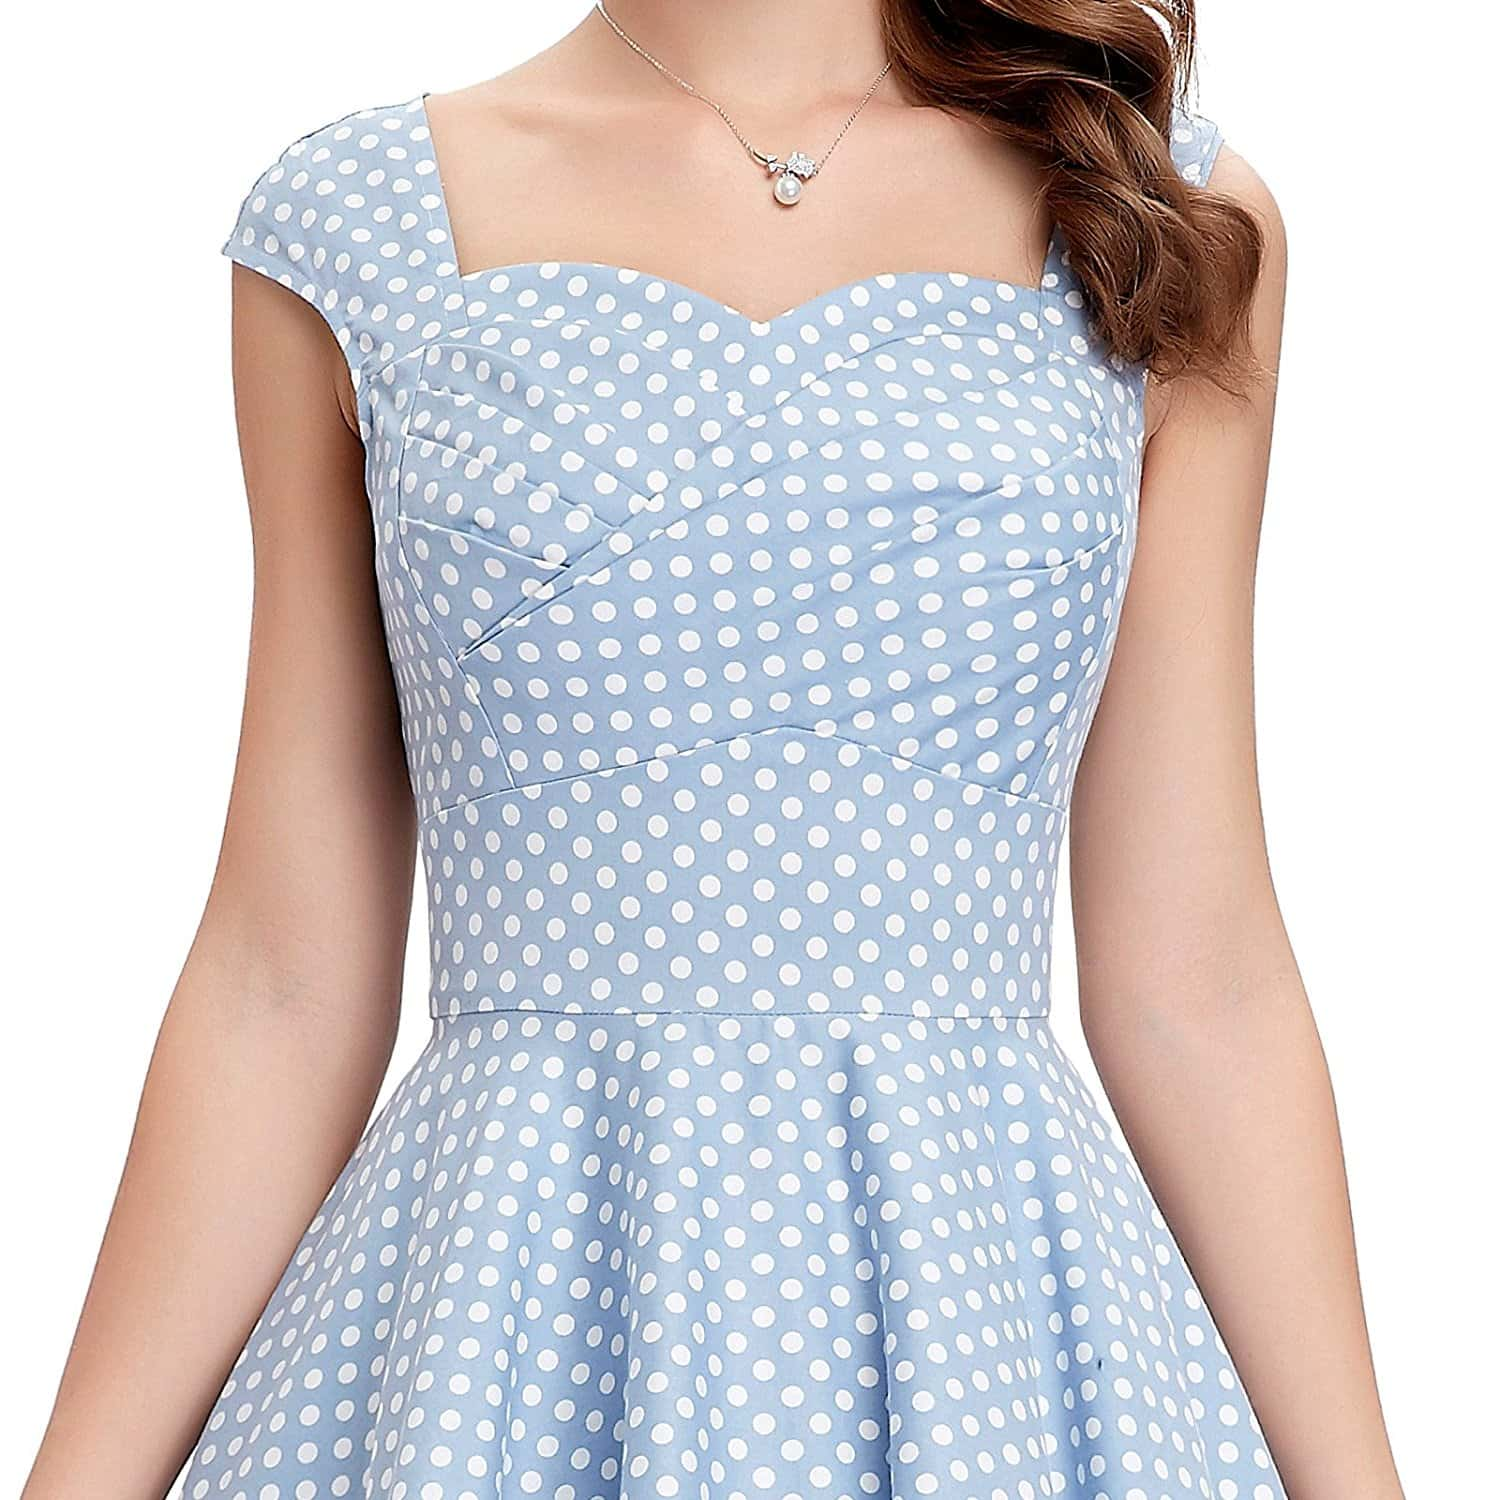 tiffany-dusty-blue-polka-dot-dress-detail